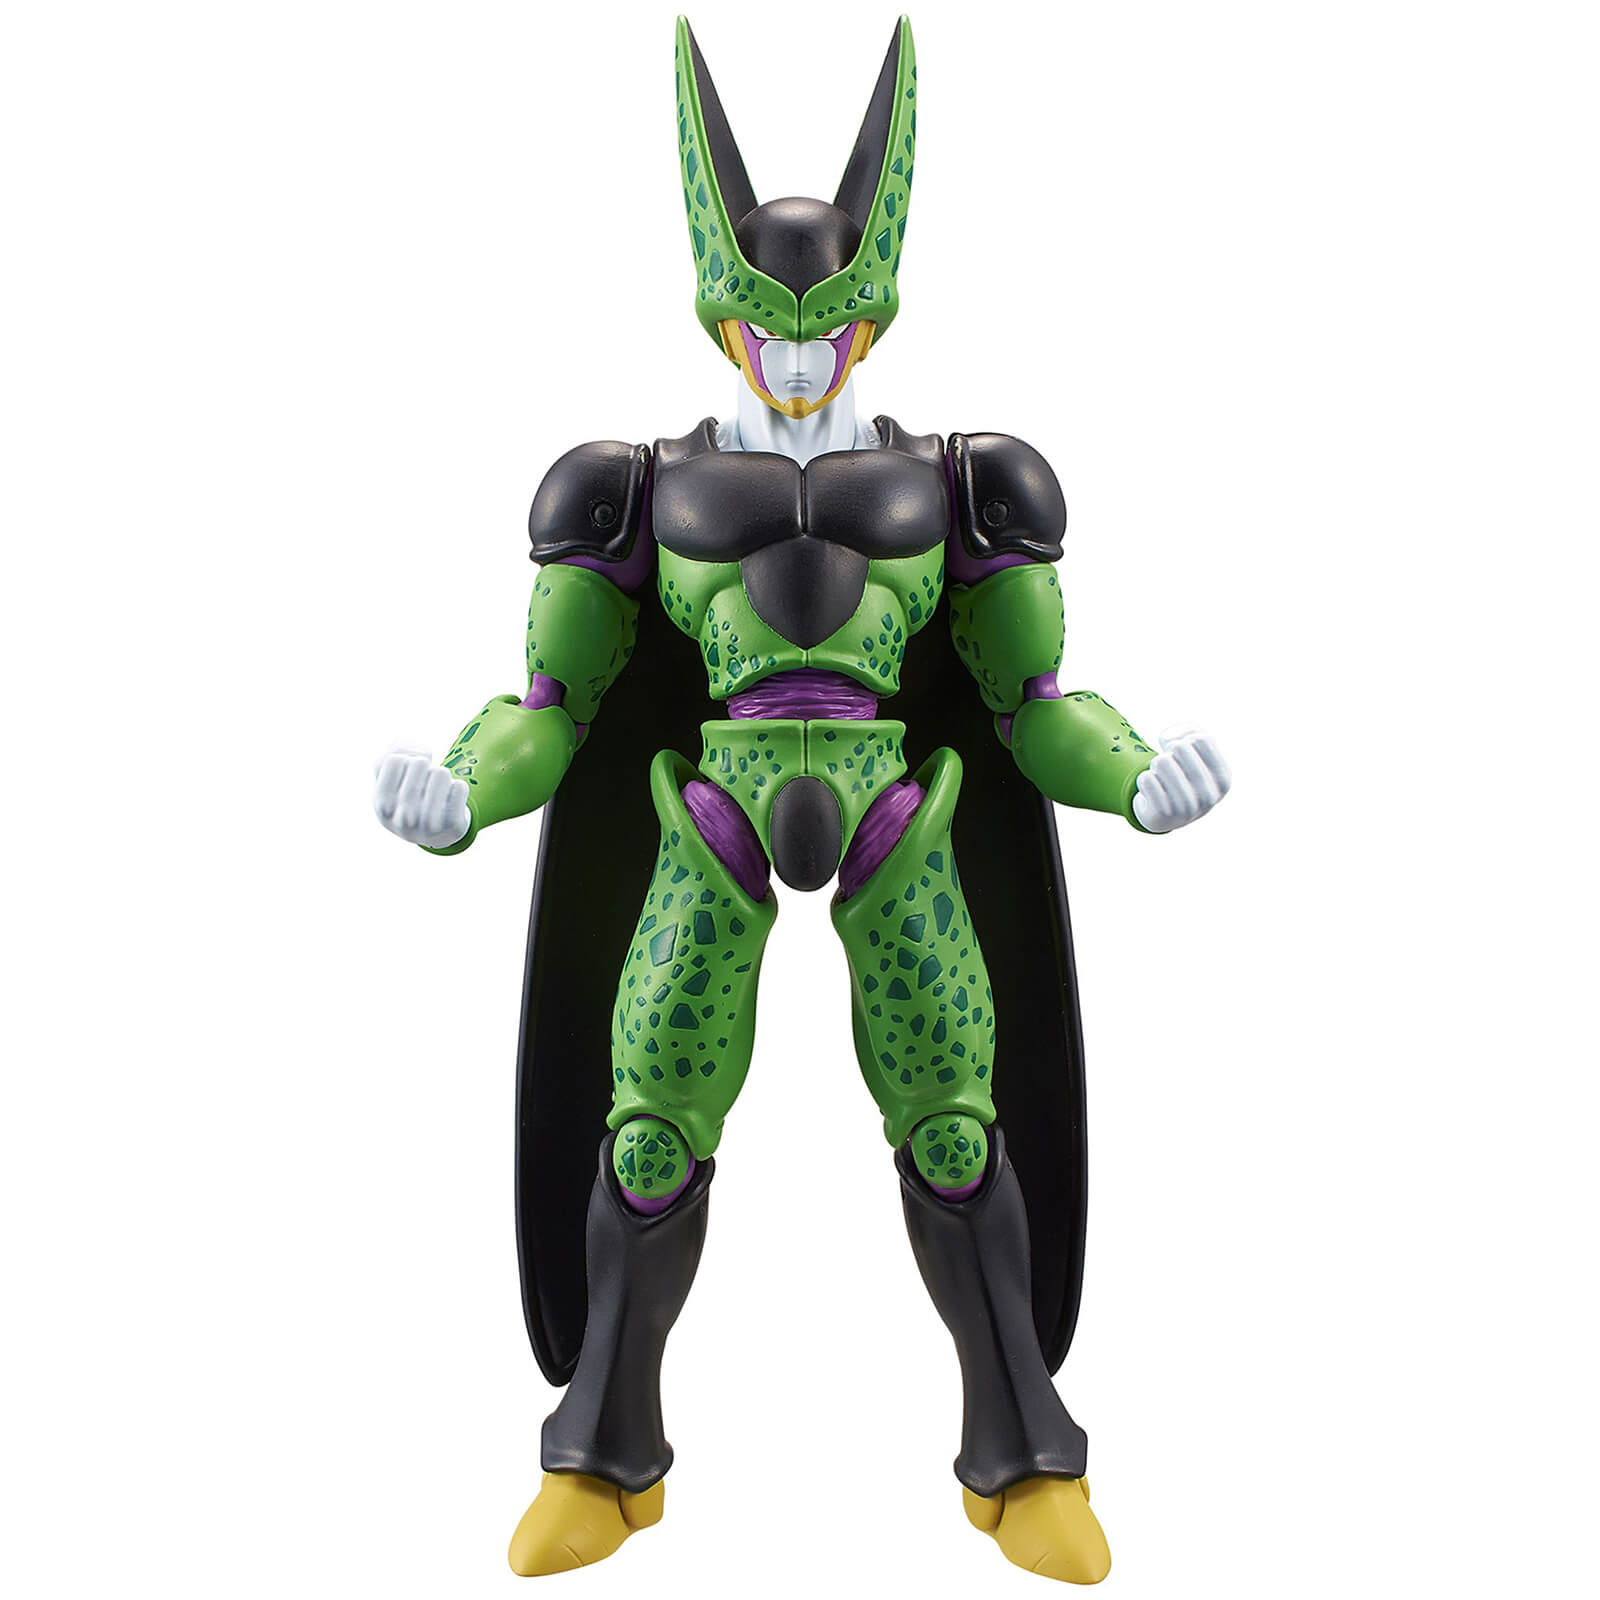 Image of Bandai Dragon Stars DBZ Perfect Cell Final Form Action Figure